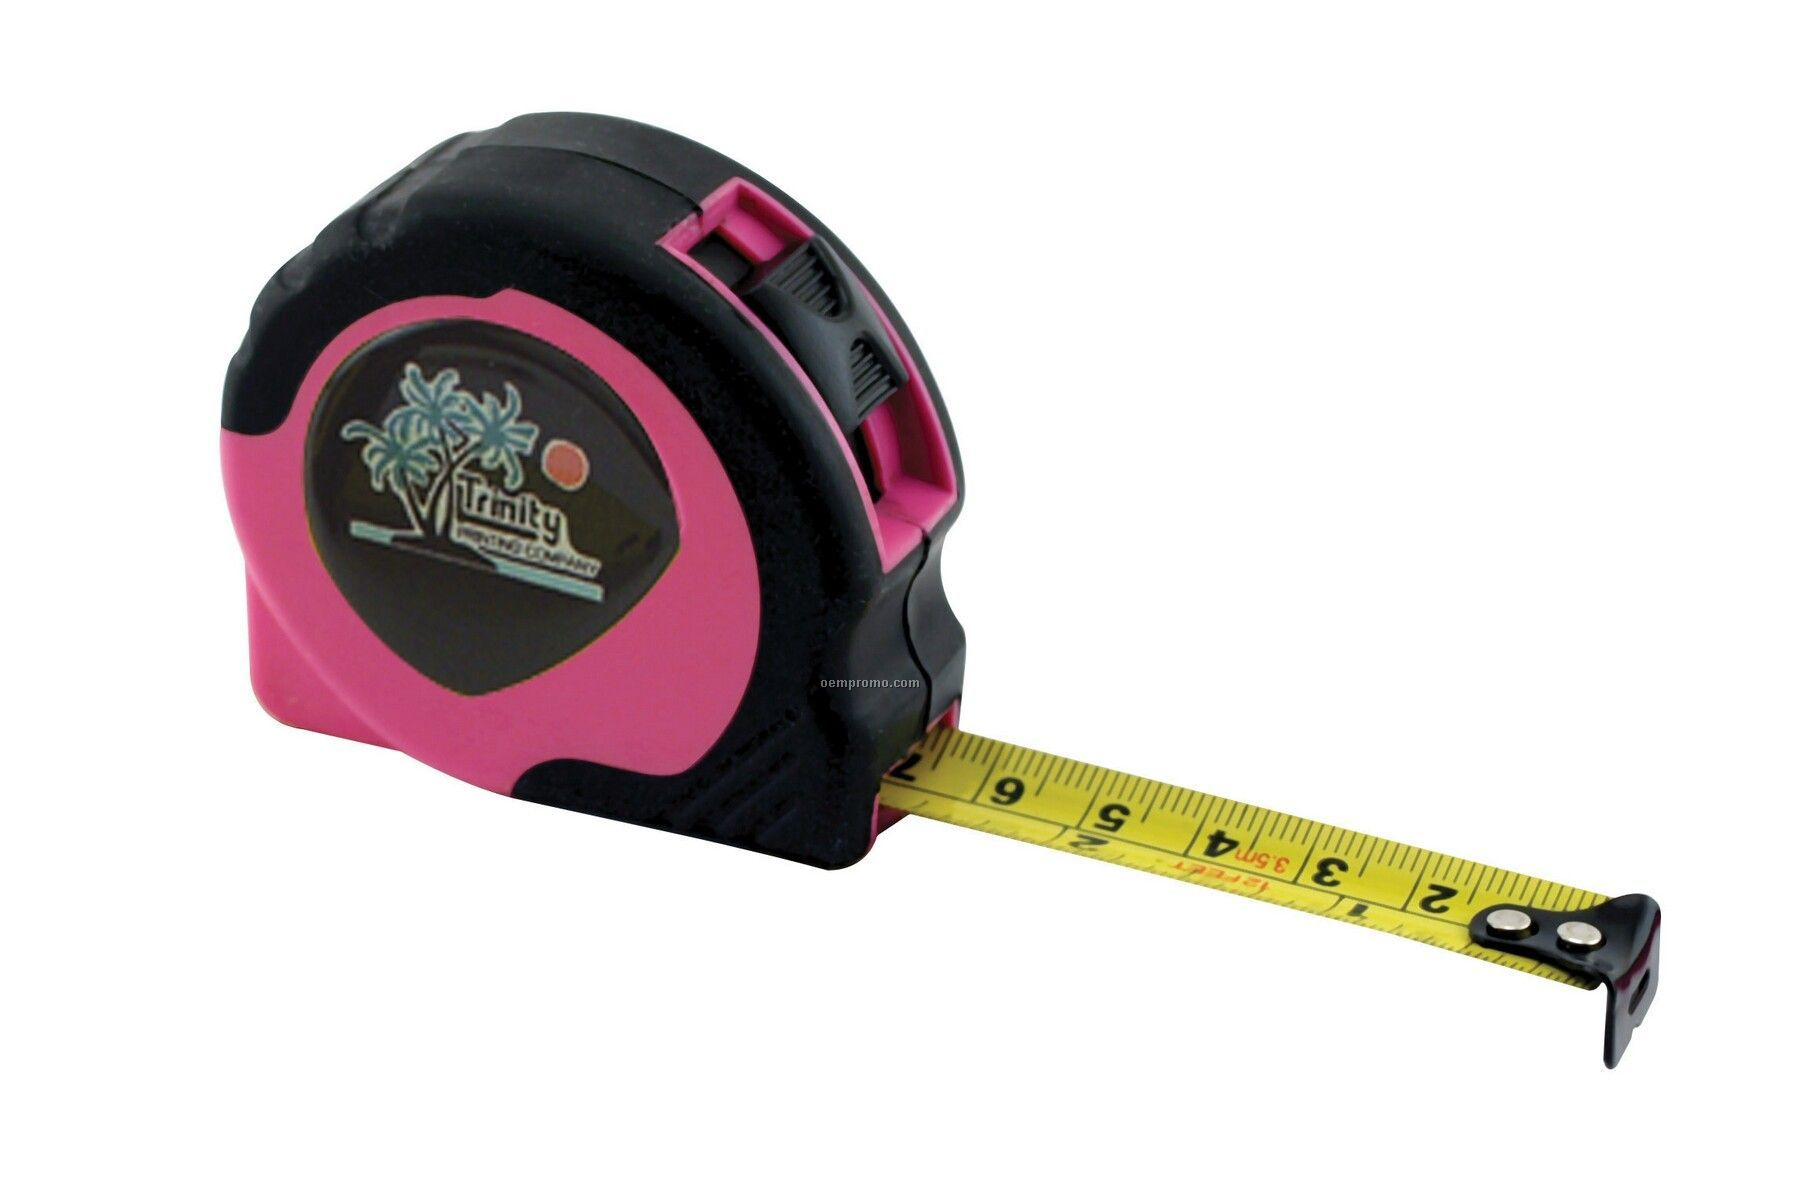 "Women's Retractable Power Tape Measure- Laminated Label (12'x5/8"" Blade)"